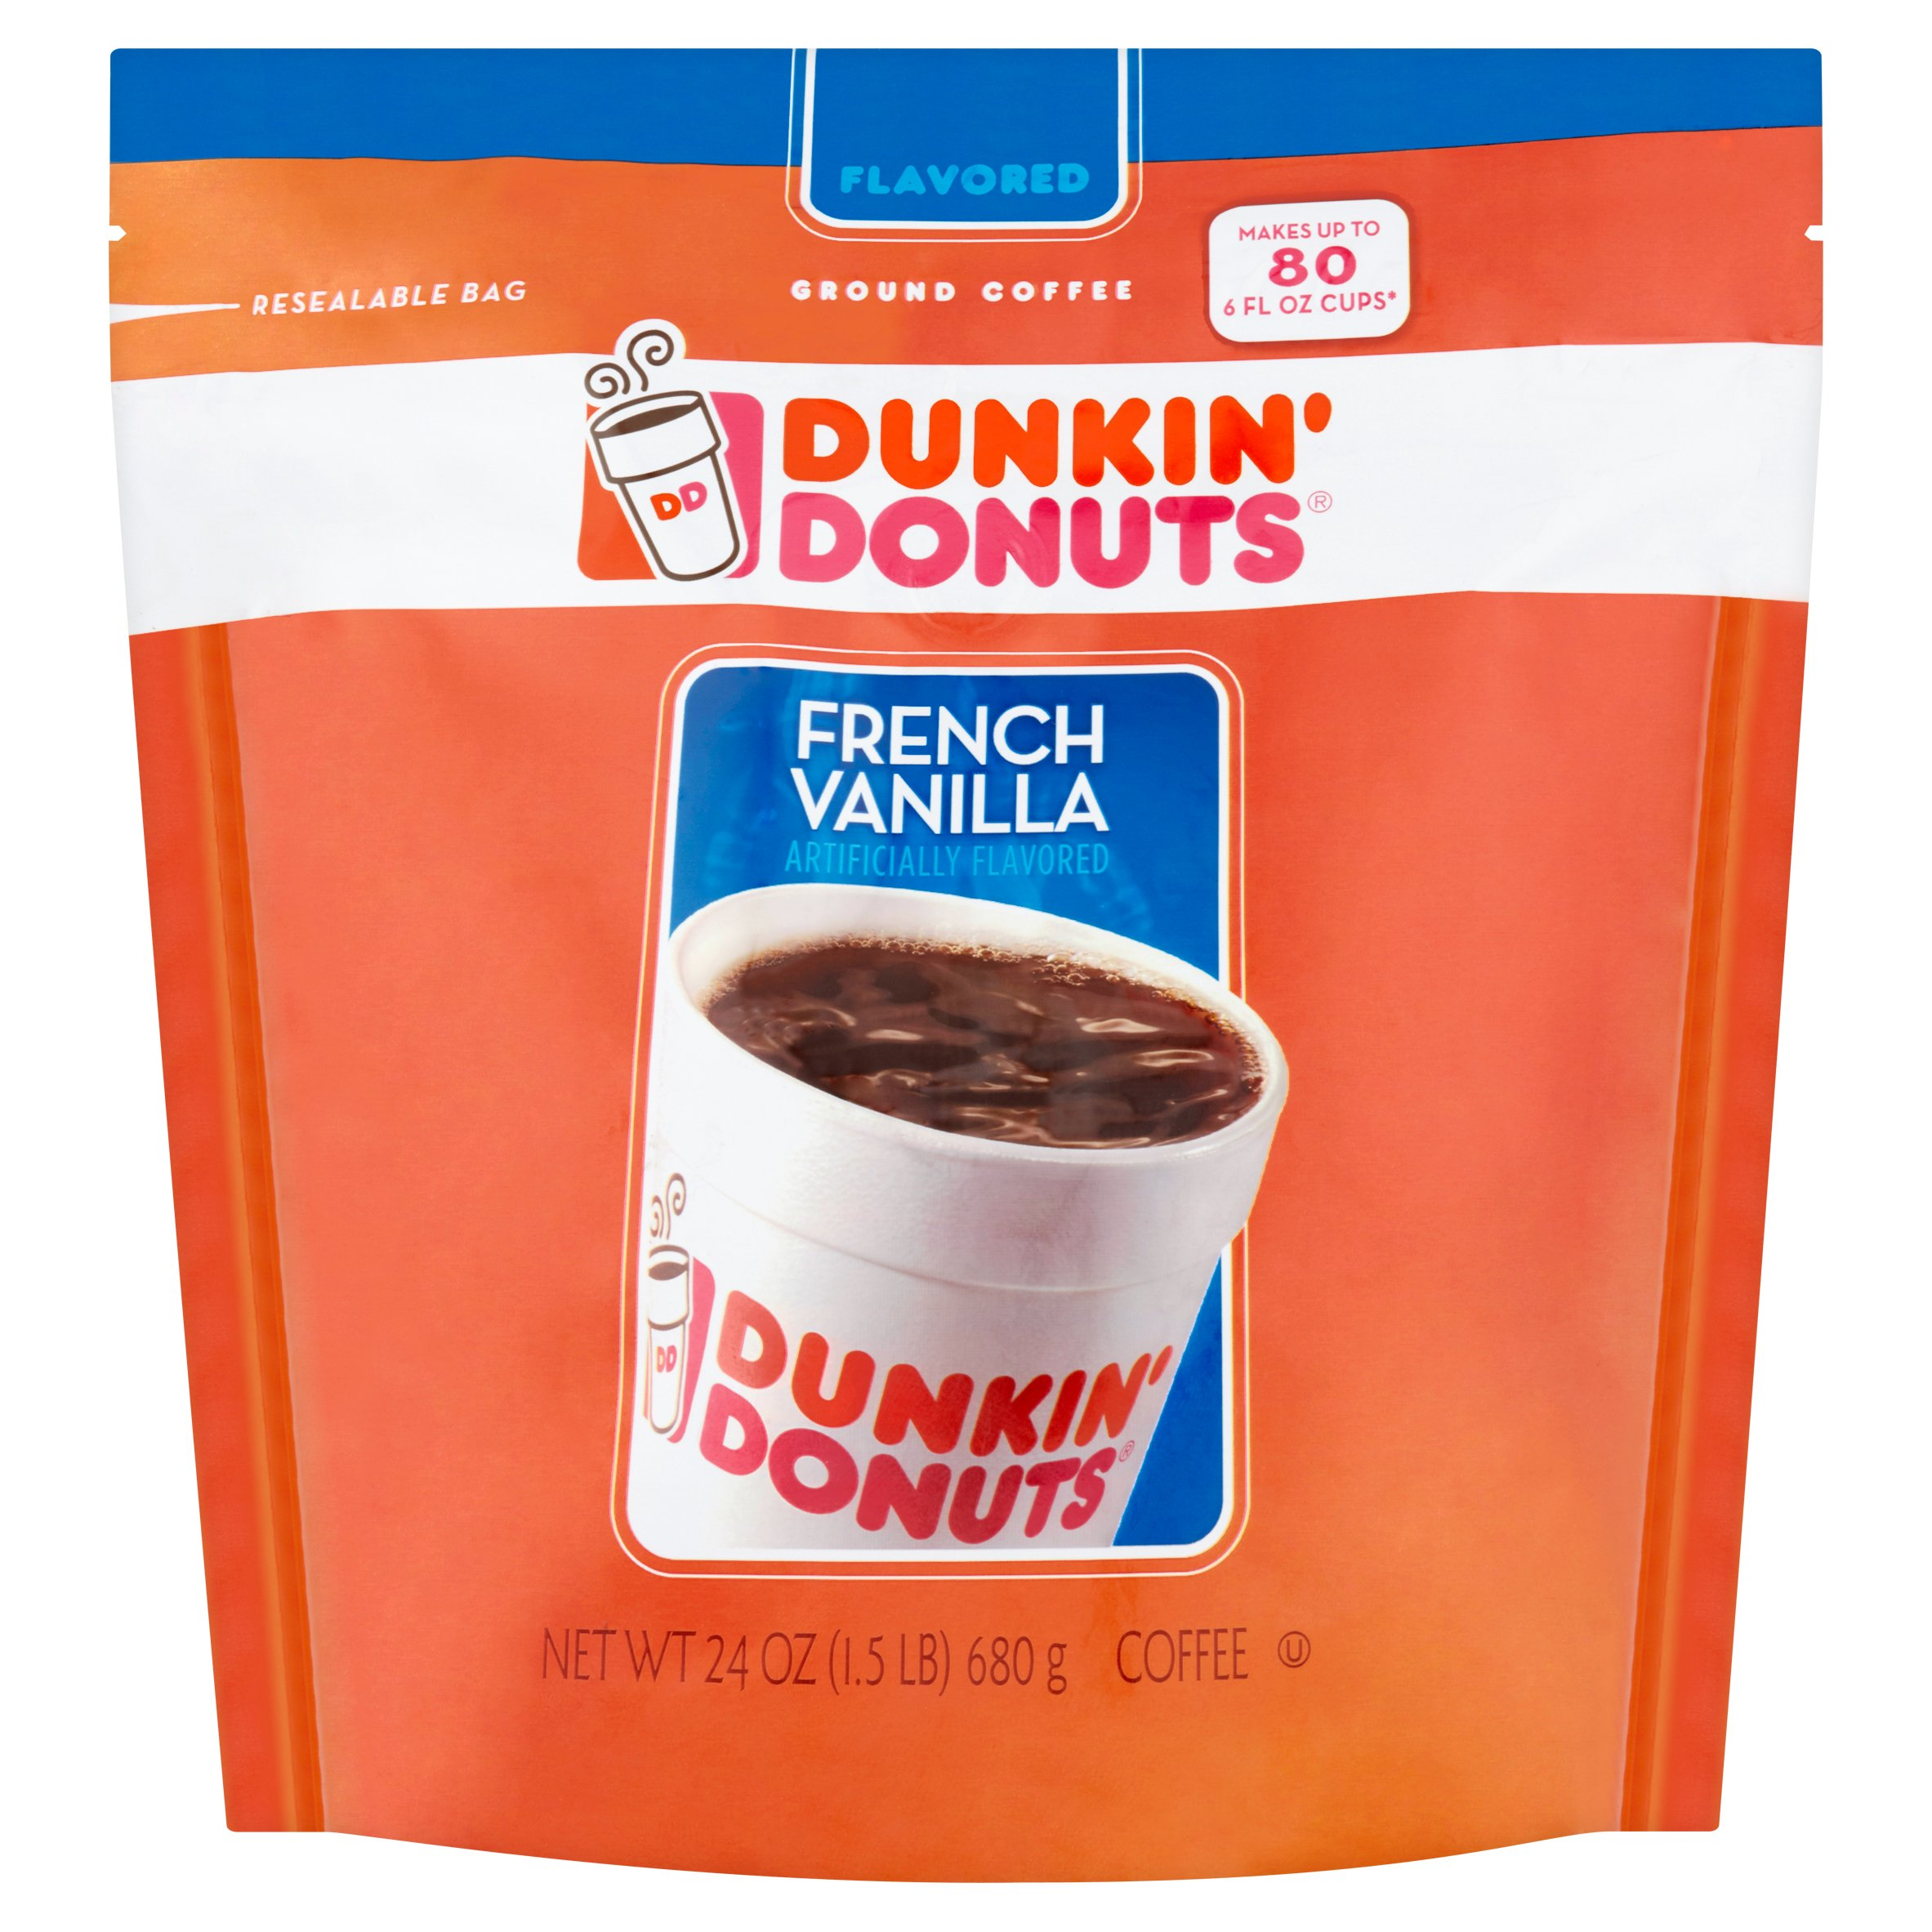 Dunkin Donuts Flavored Coffee Nutrition Facts